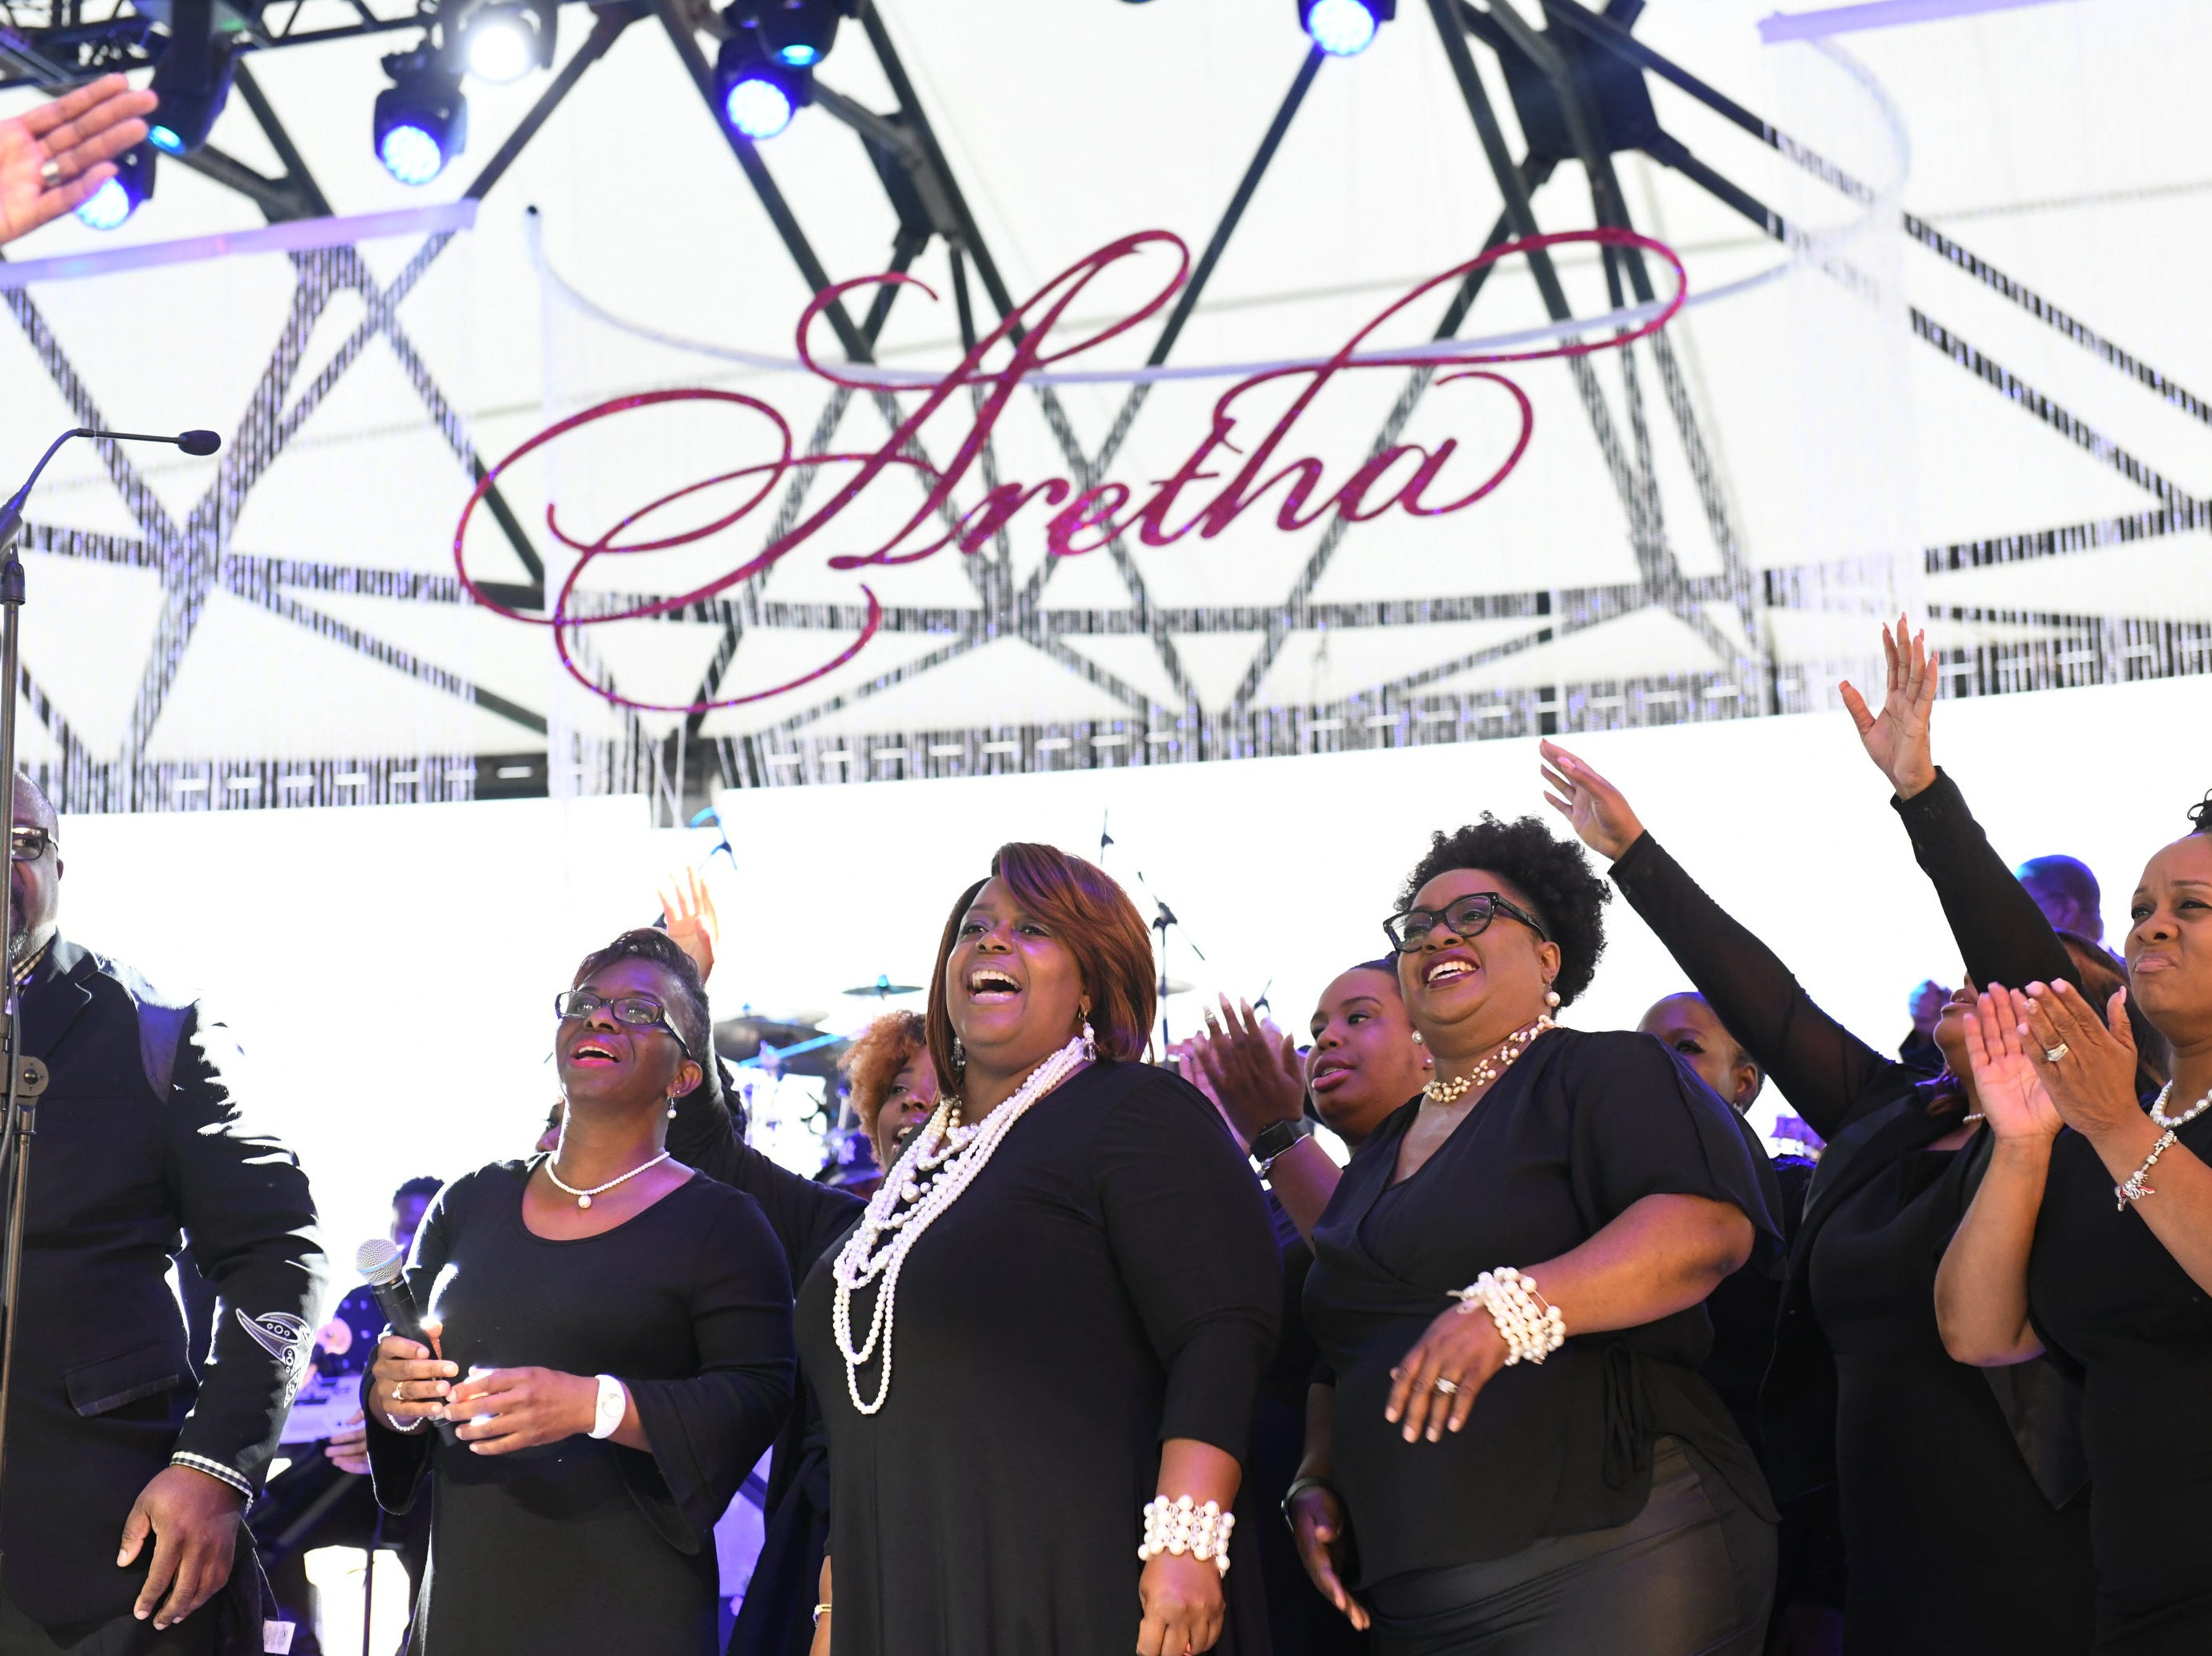 The New Bethel Baptist Church 25 Voice Choir performs on stage during The Aretha Franklin Tribute Concert.